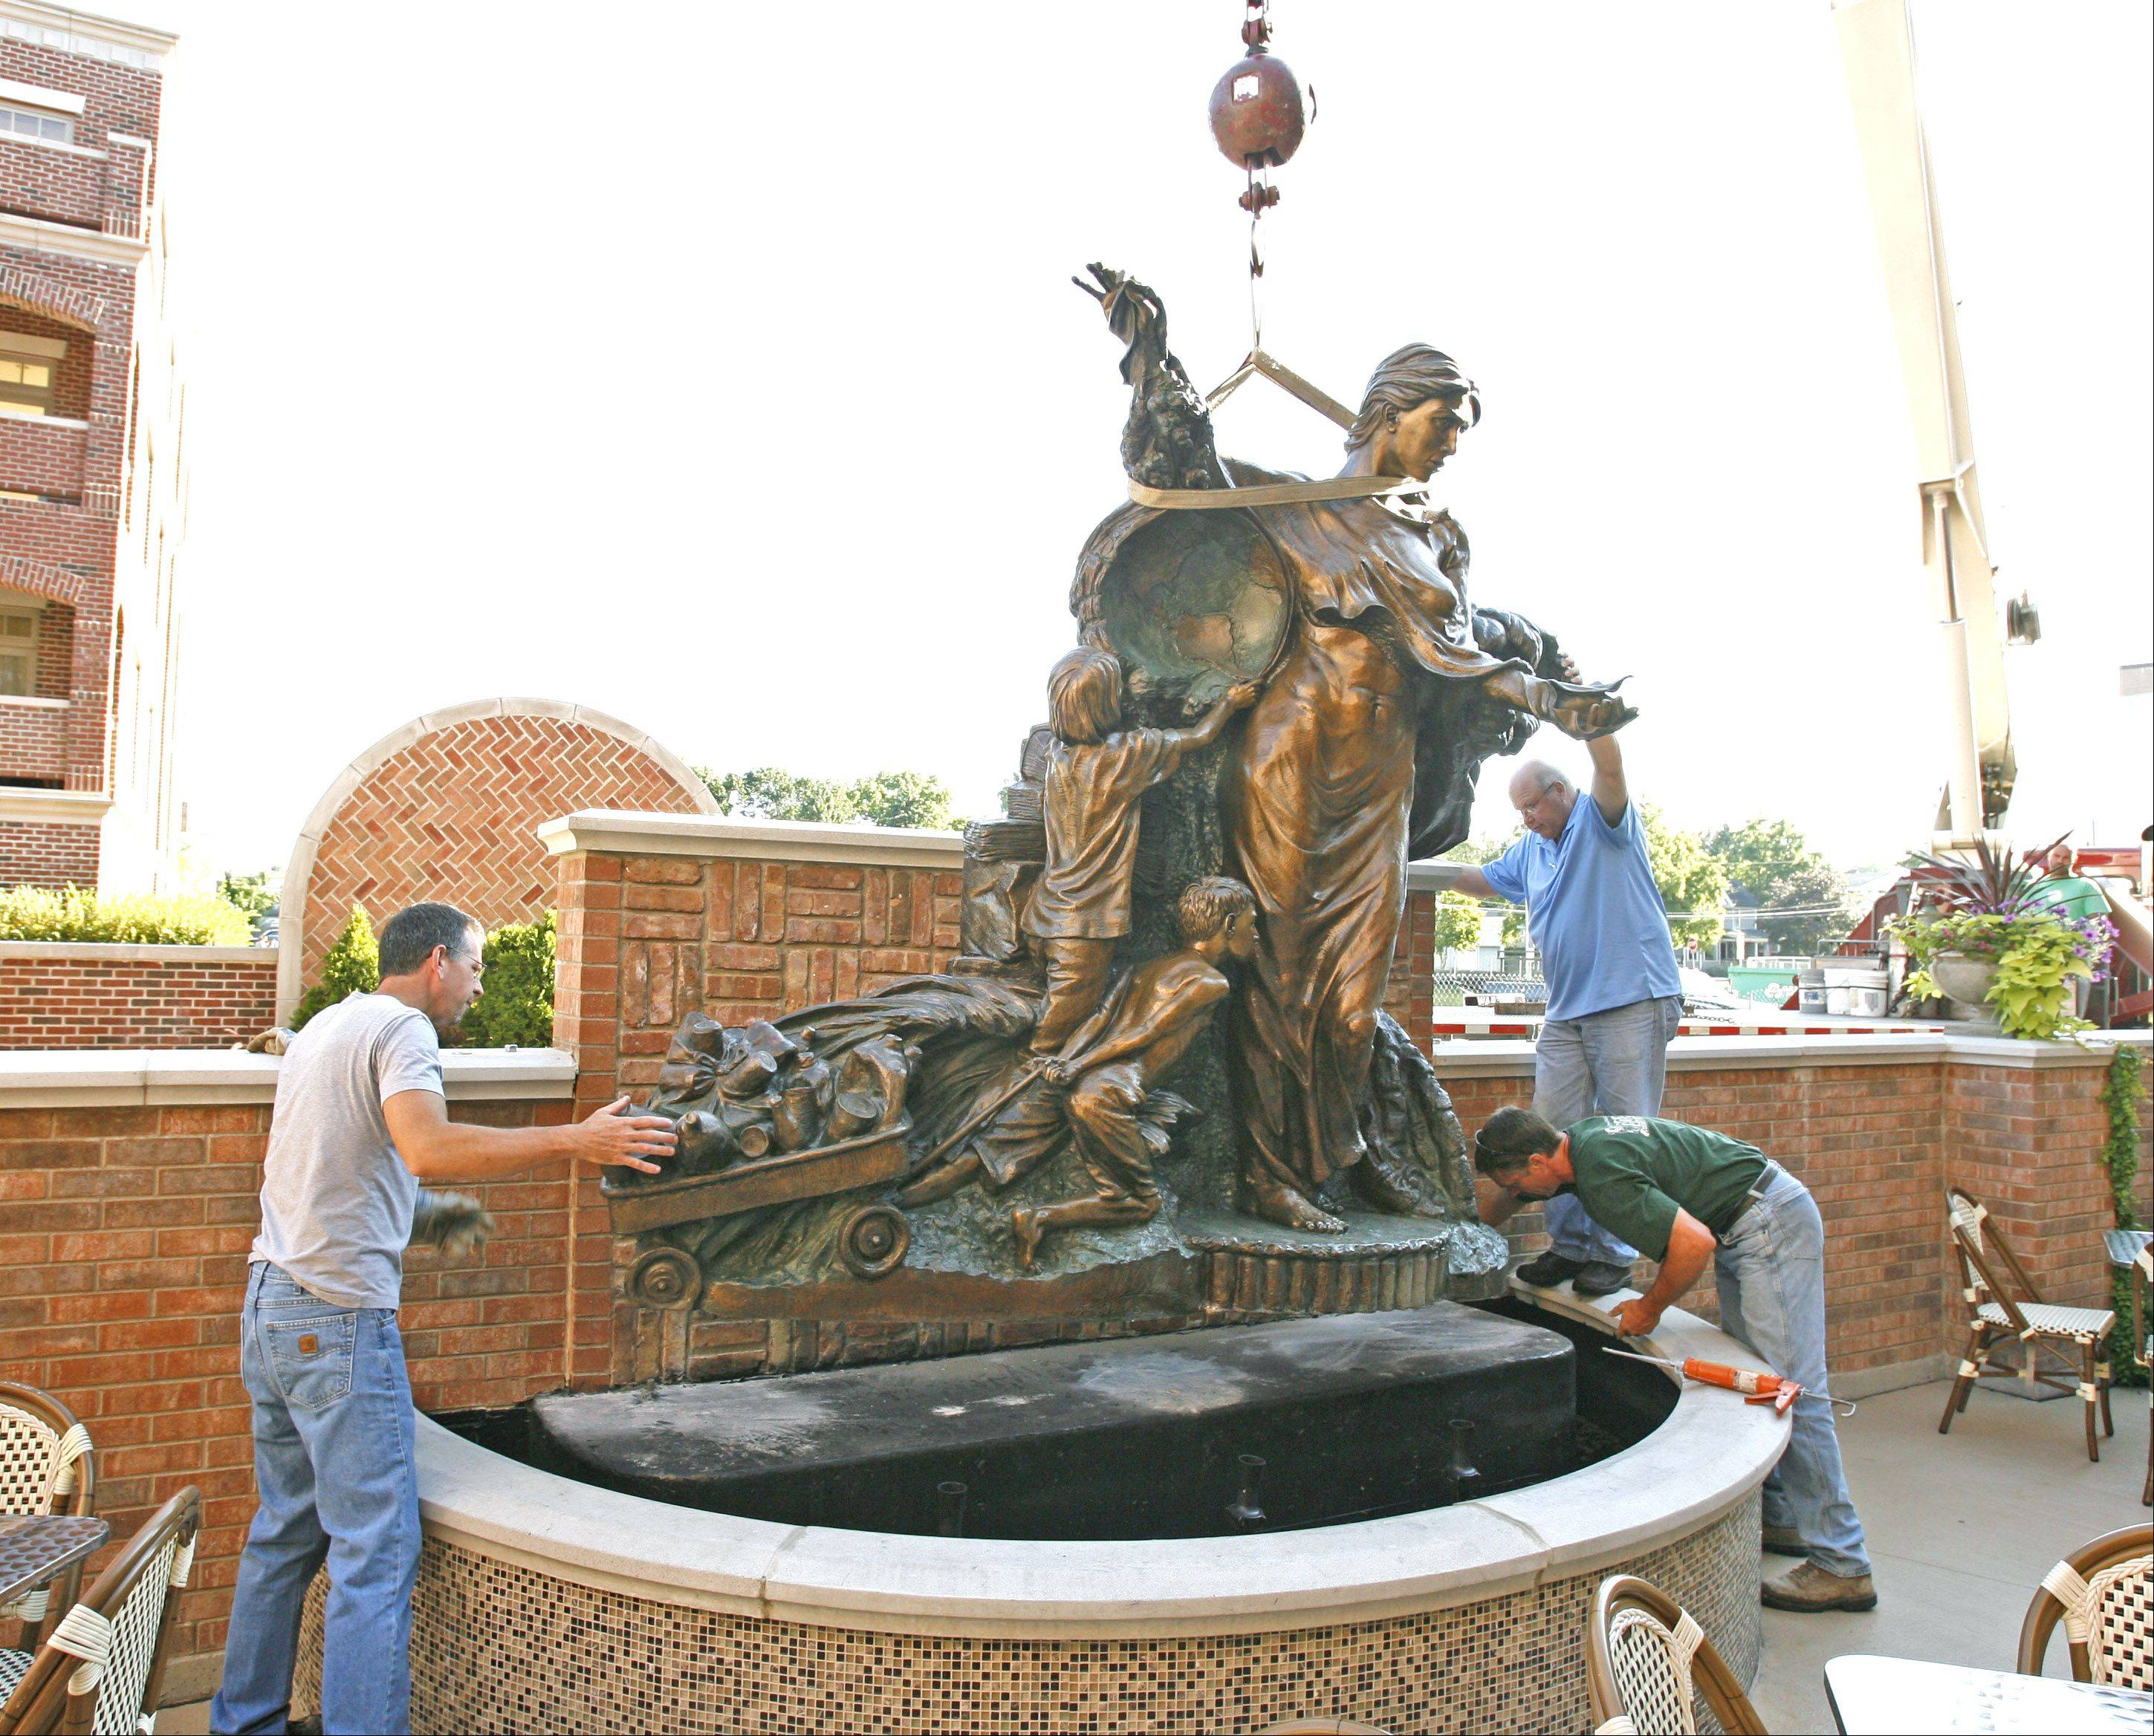 The 2,400-pound Symbiotic Sojourn sculpture was moved as part of the $200,000 renovation of the patio at Main Street Promenade in downtown Naperville. Sculptor Jeff Adams, left, cleaned and sealed the piece before its return Thursday to Naperville.